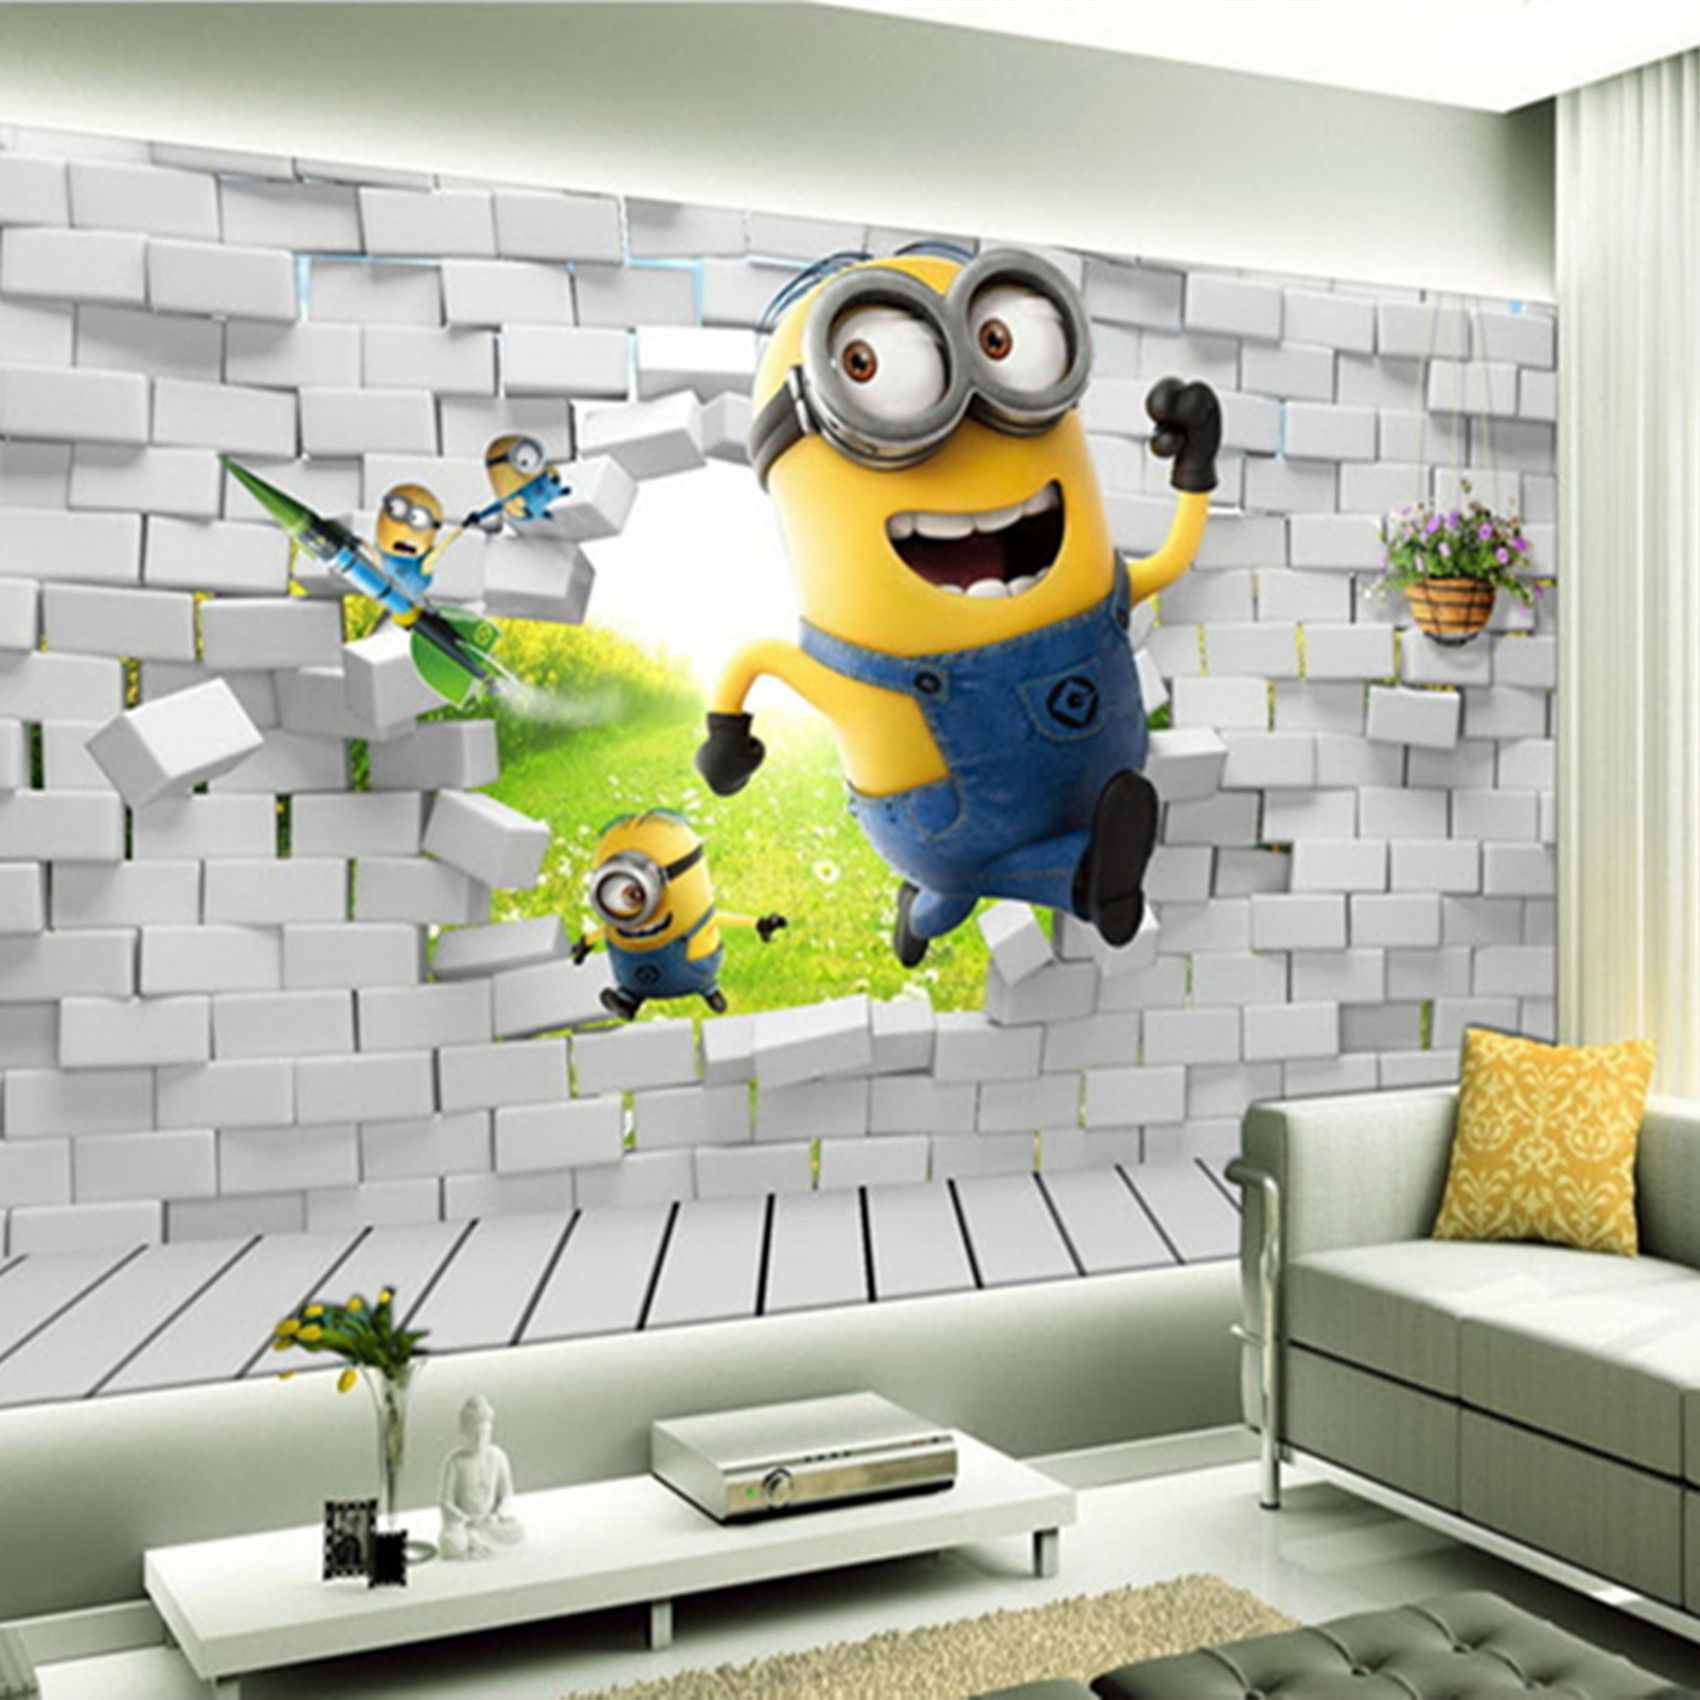 Behangpapier slaapkamer 3d google zoeken deco diy pinterest custom mural brick cute minion cartoon mural wallpaper for kids baby room tv background photo mural wall fresco sticker amipublicfo Images